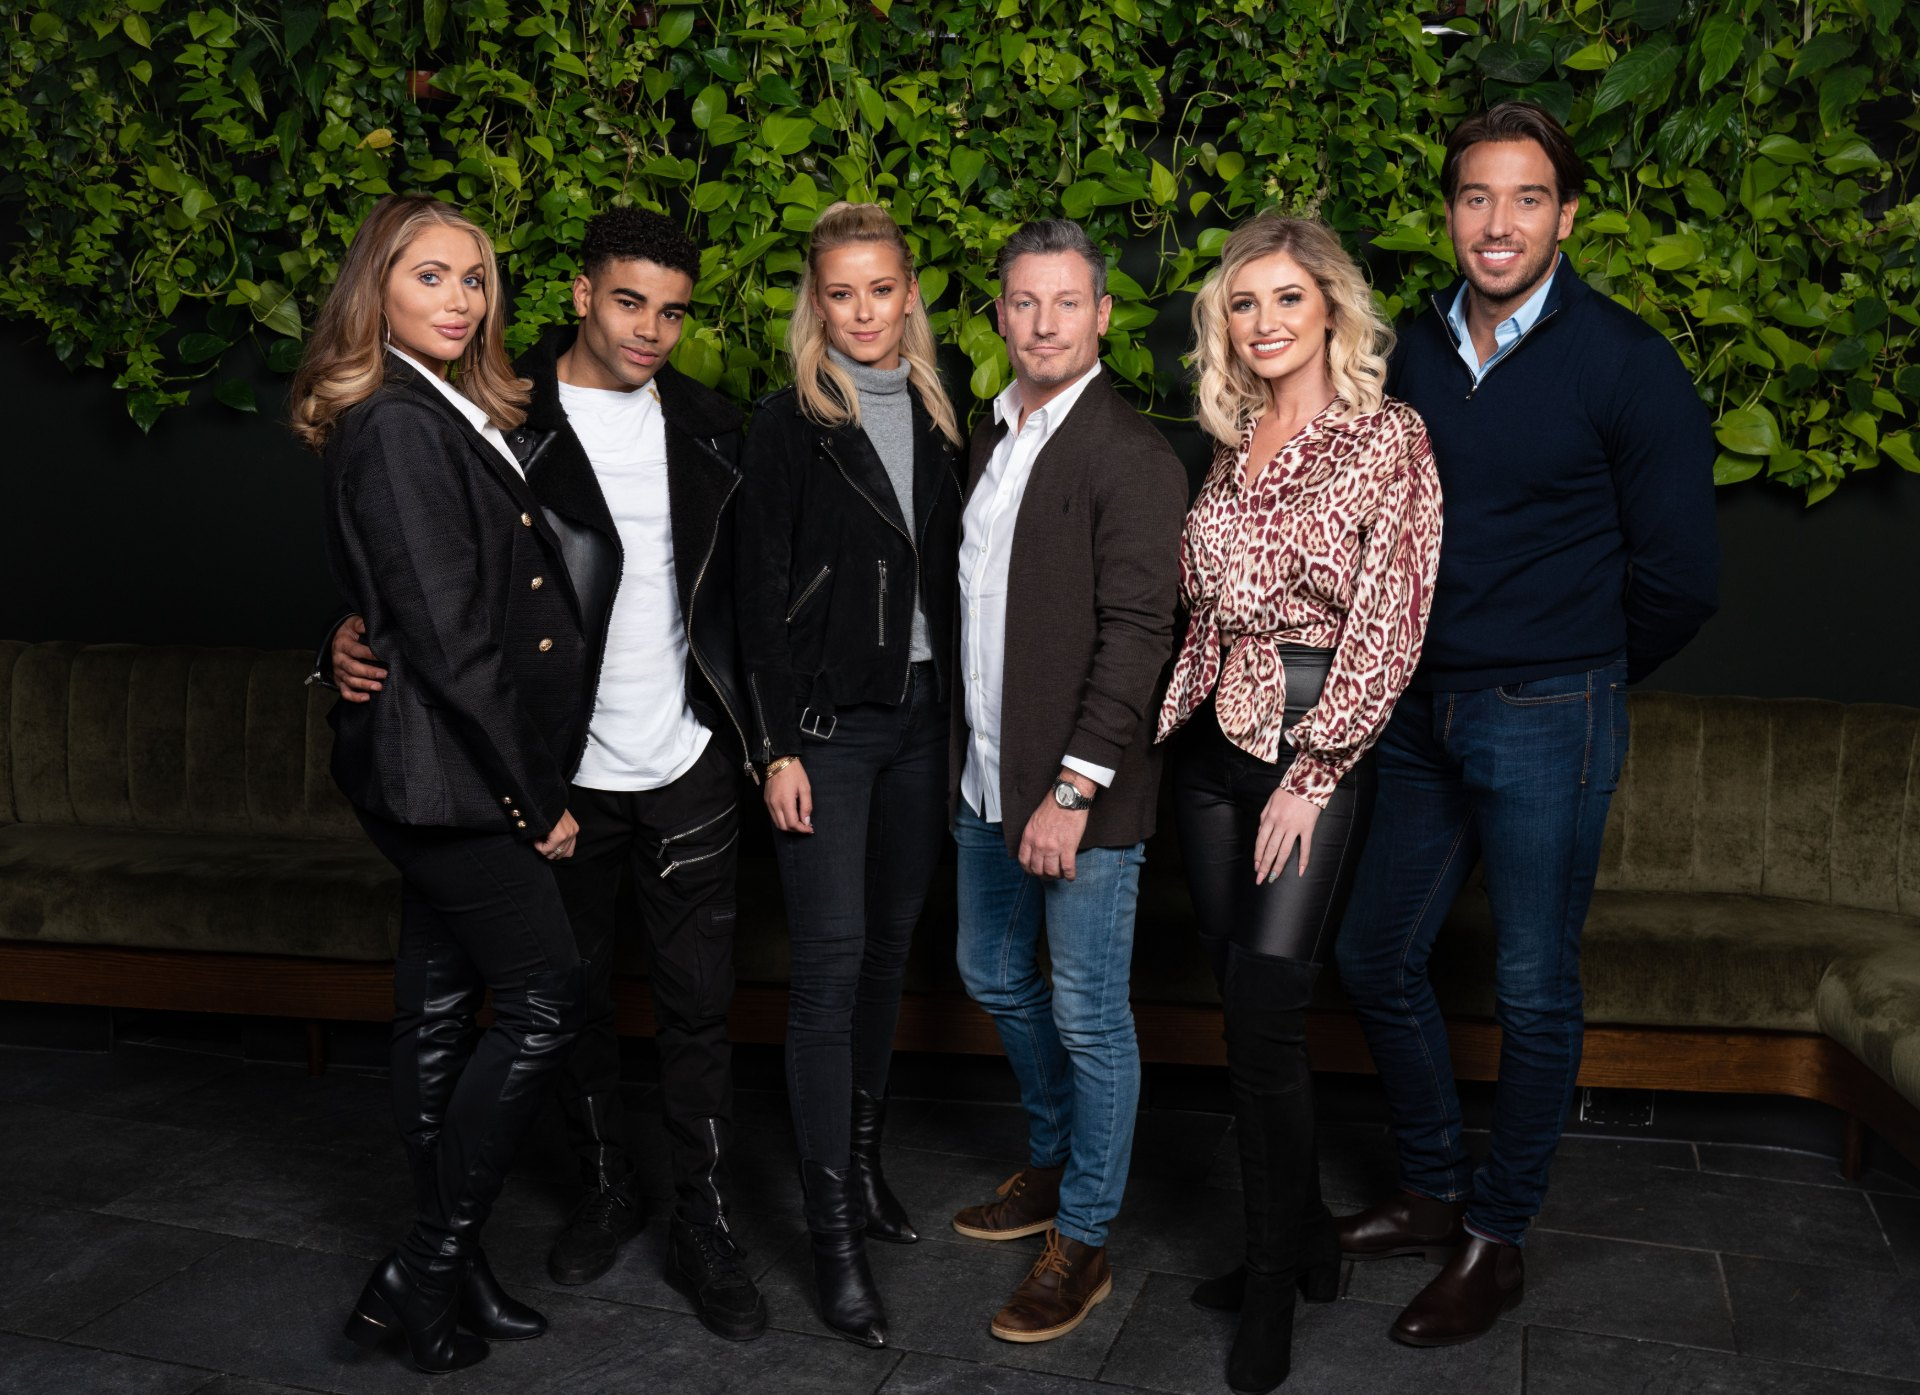 Celebs Go Dating Season 8 Confirmed As Singletons Are Announced!